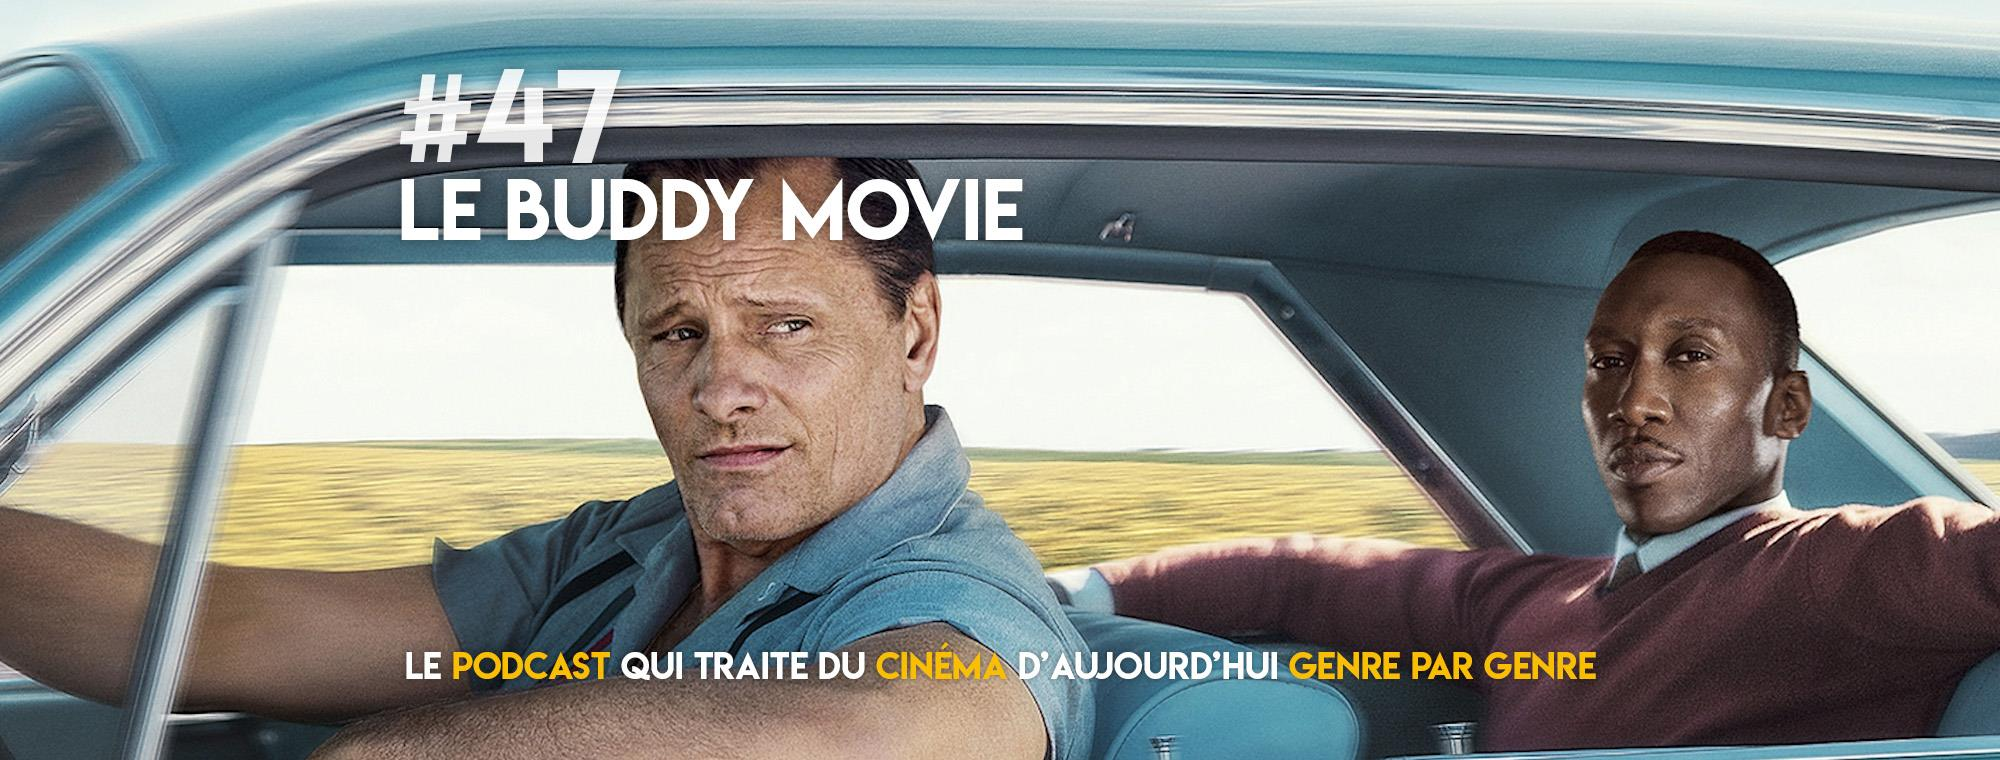 Parlons Péloches - #47 Le buddy movie